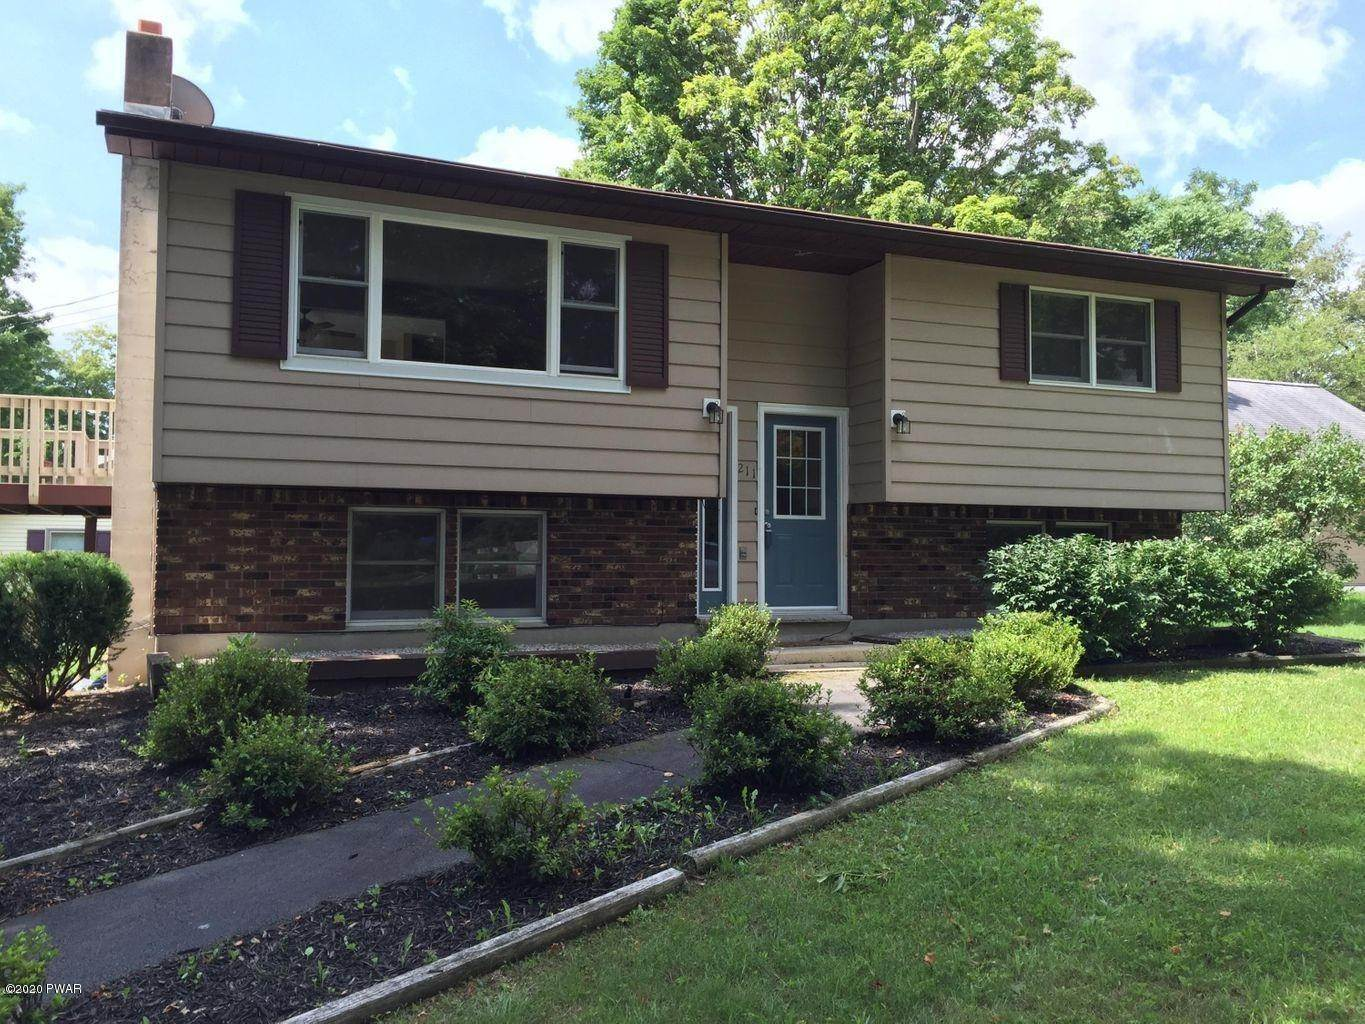 2. Single Family Homes for Sale at 211 E High St Milford, Pennsylvania 18337 United States